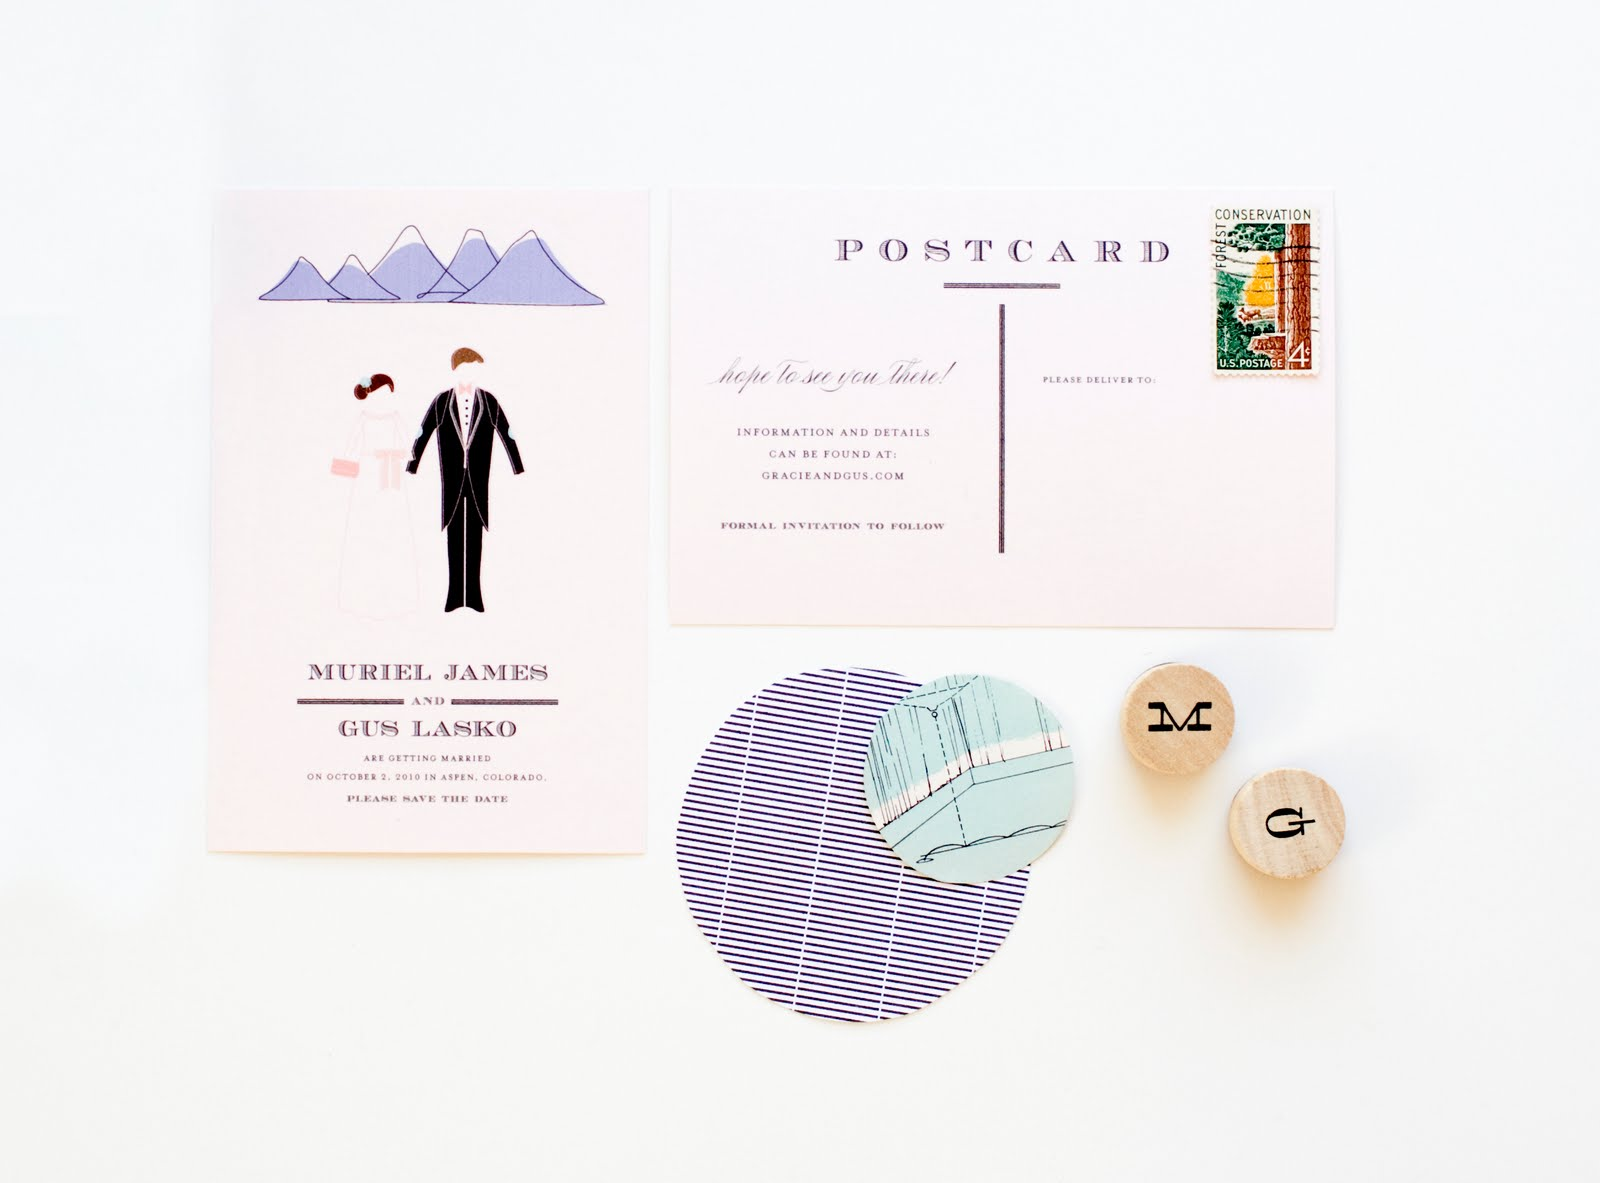 Mountain Wedding Invitations images